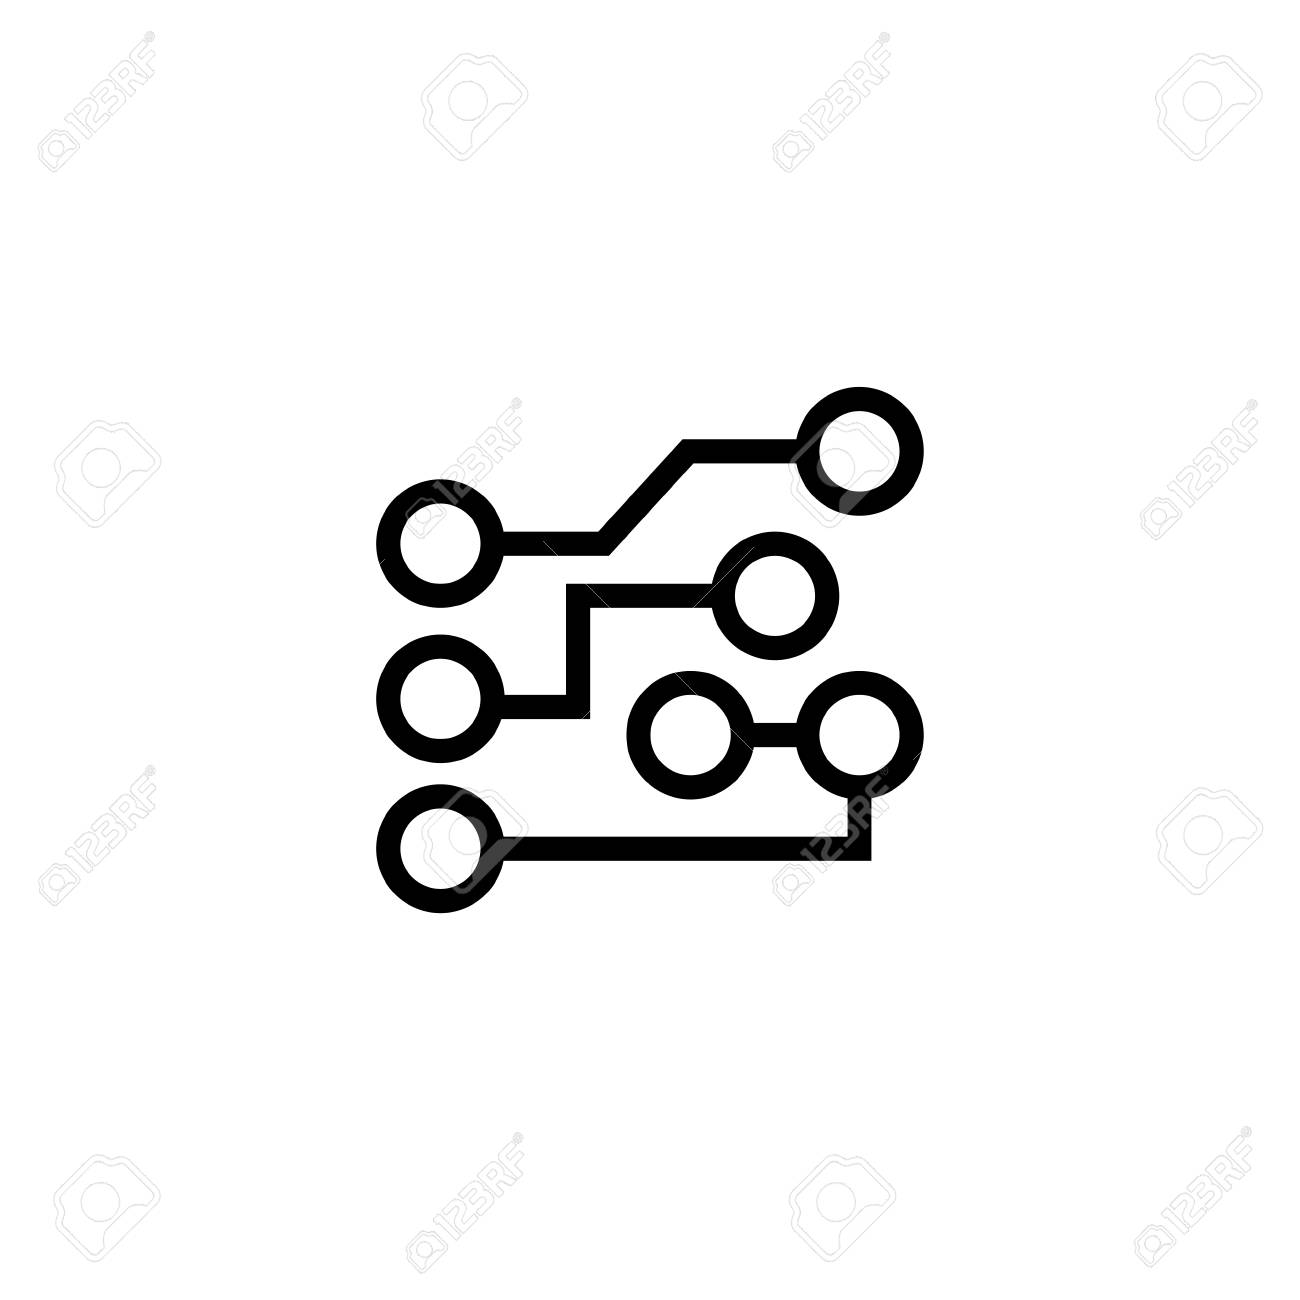 Circuit Board In Simple Black Symbol On White Background Stock Photo Build A Images Of 98874555